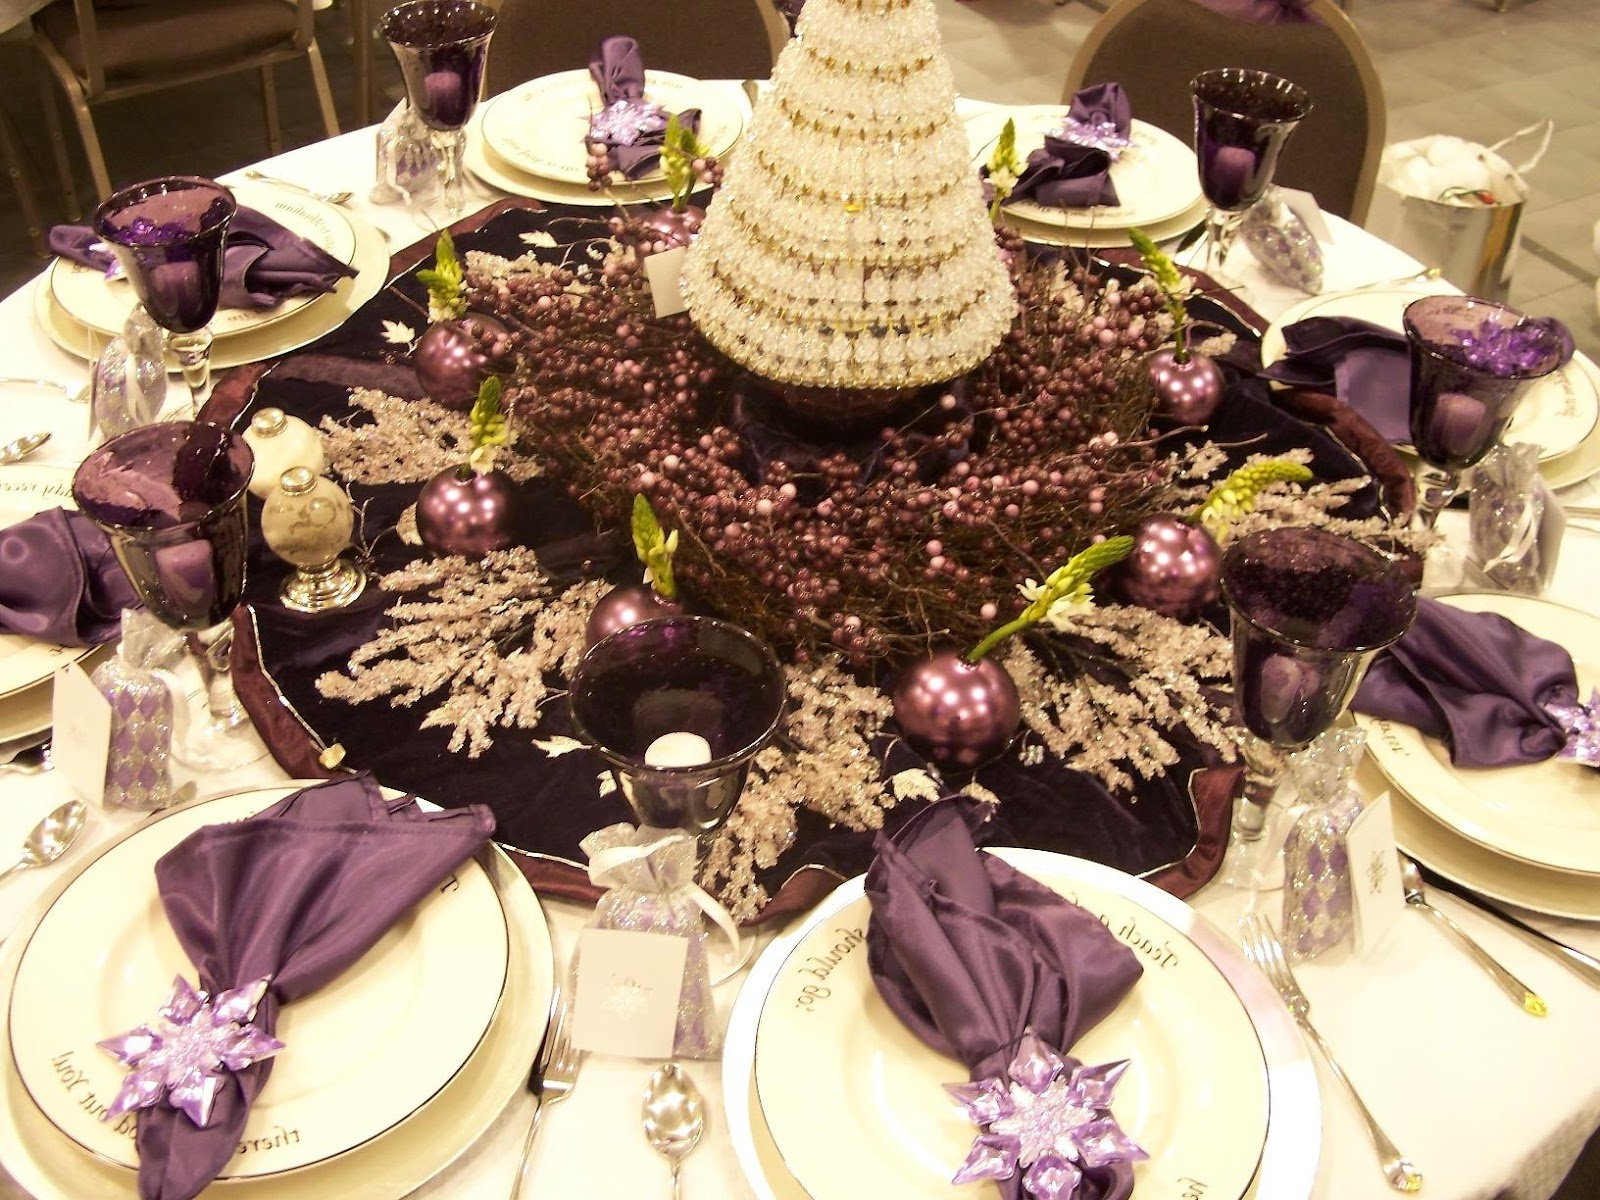 These fabulous table settings